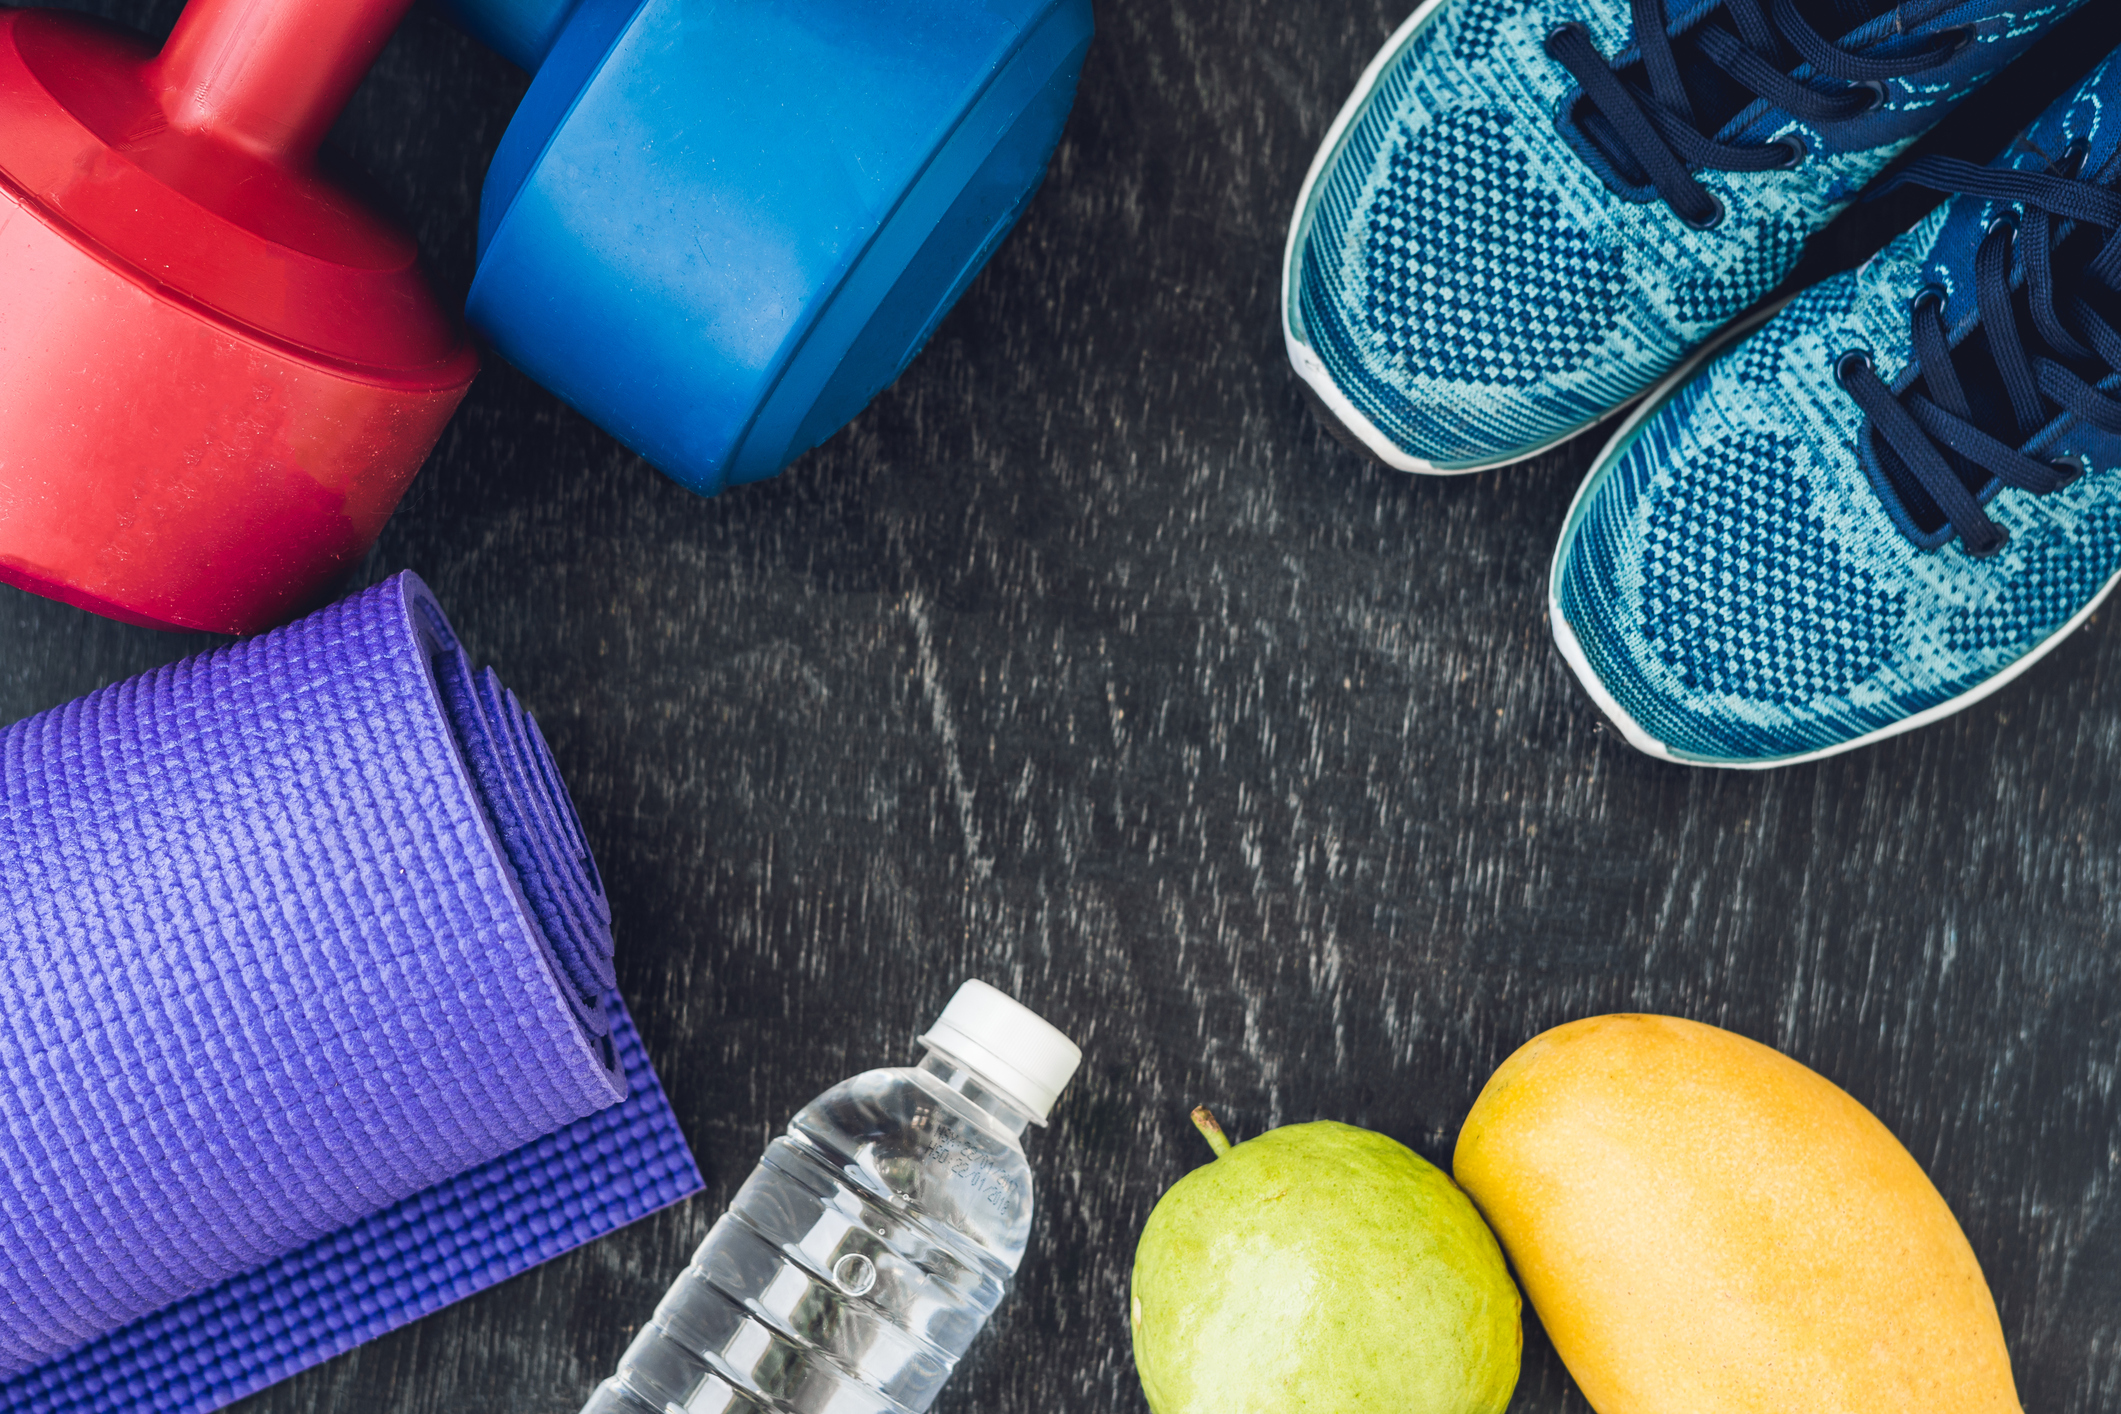 Diet and exercise mistakes